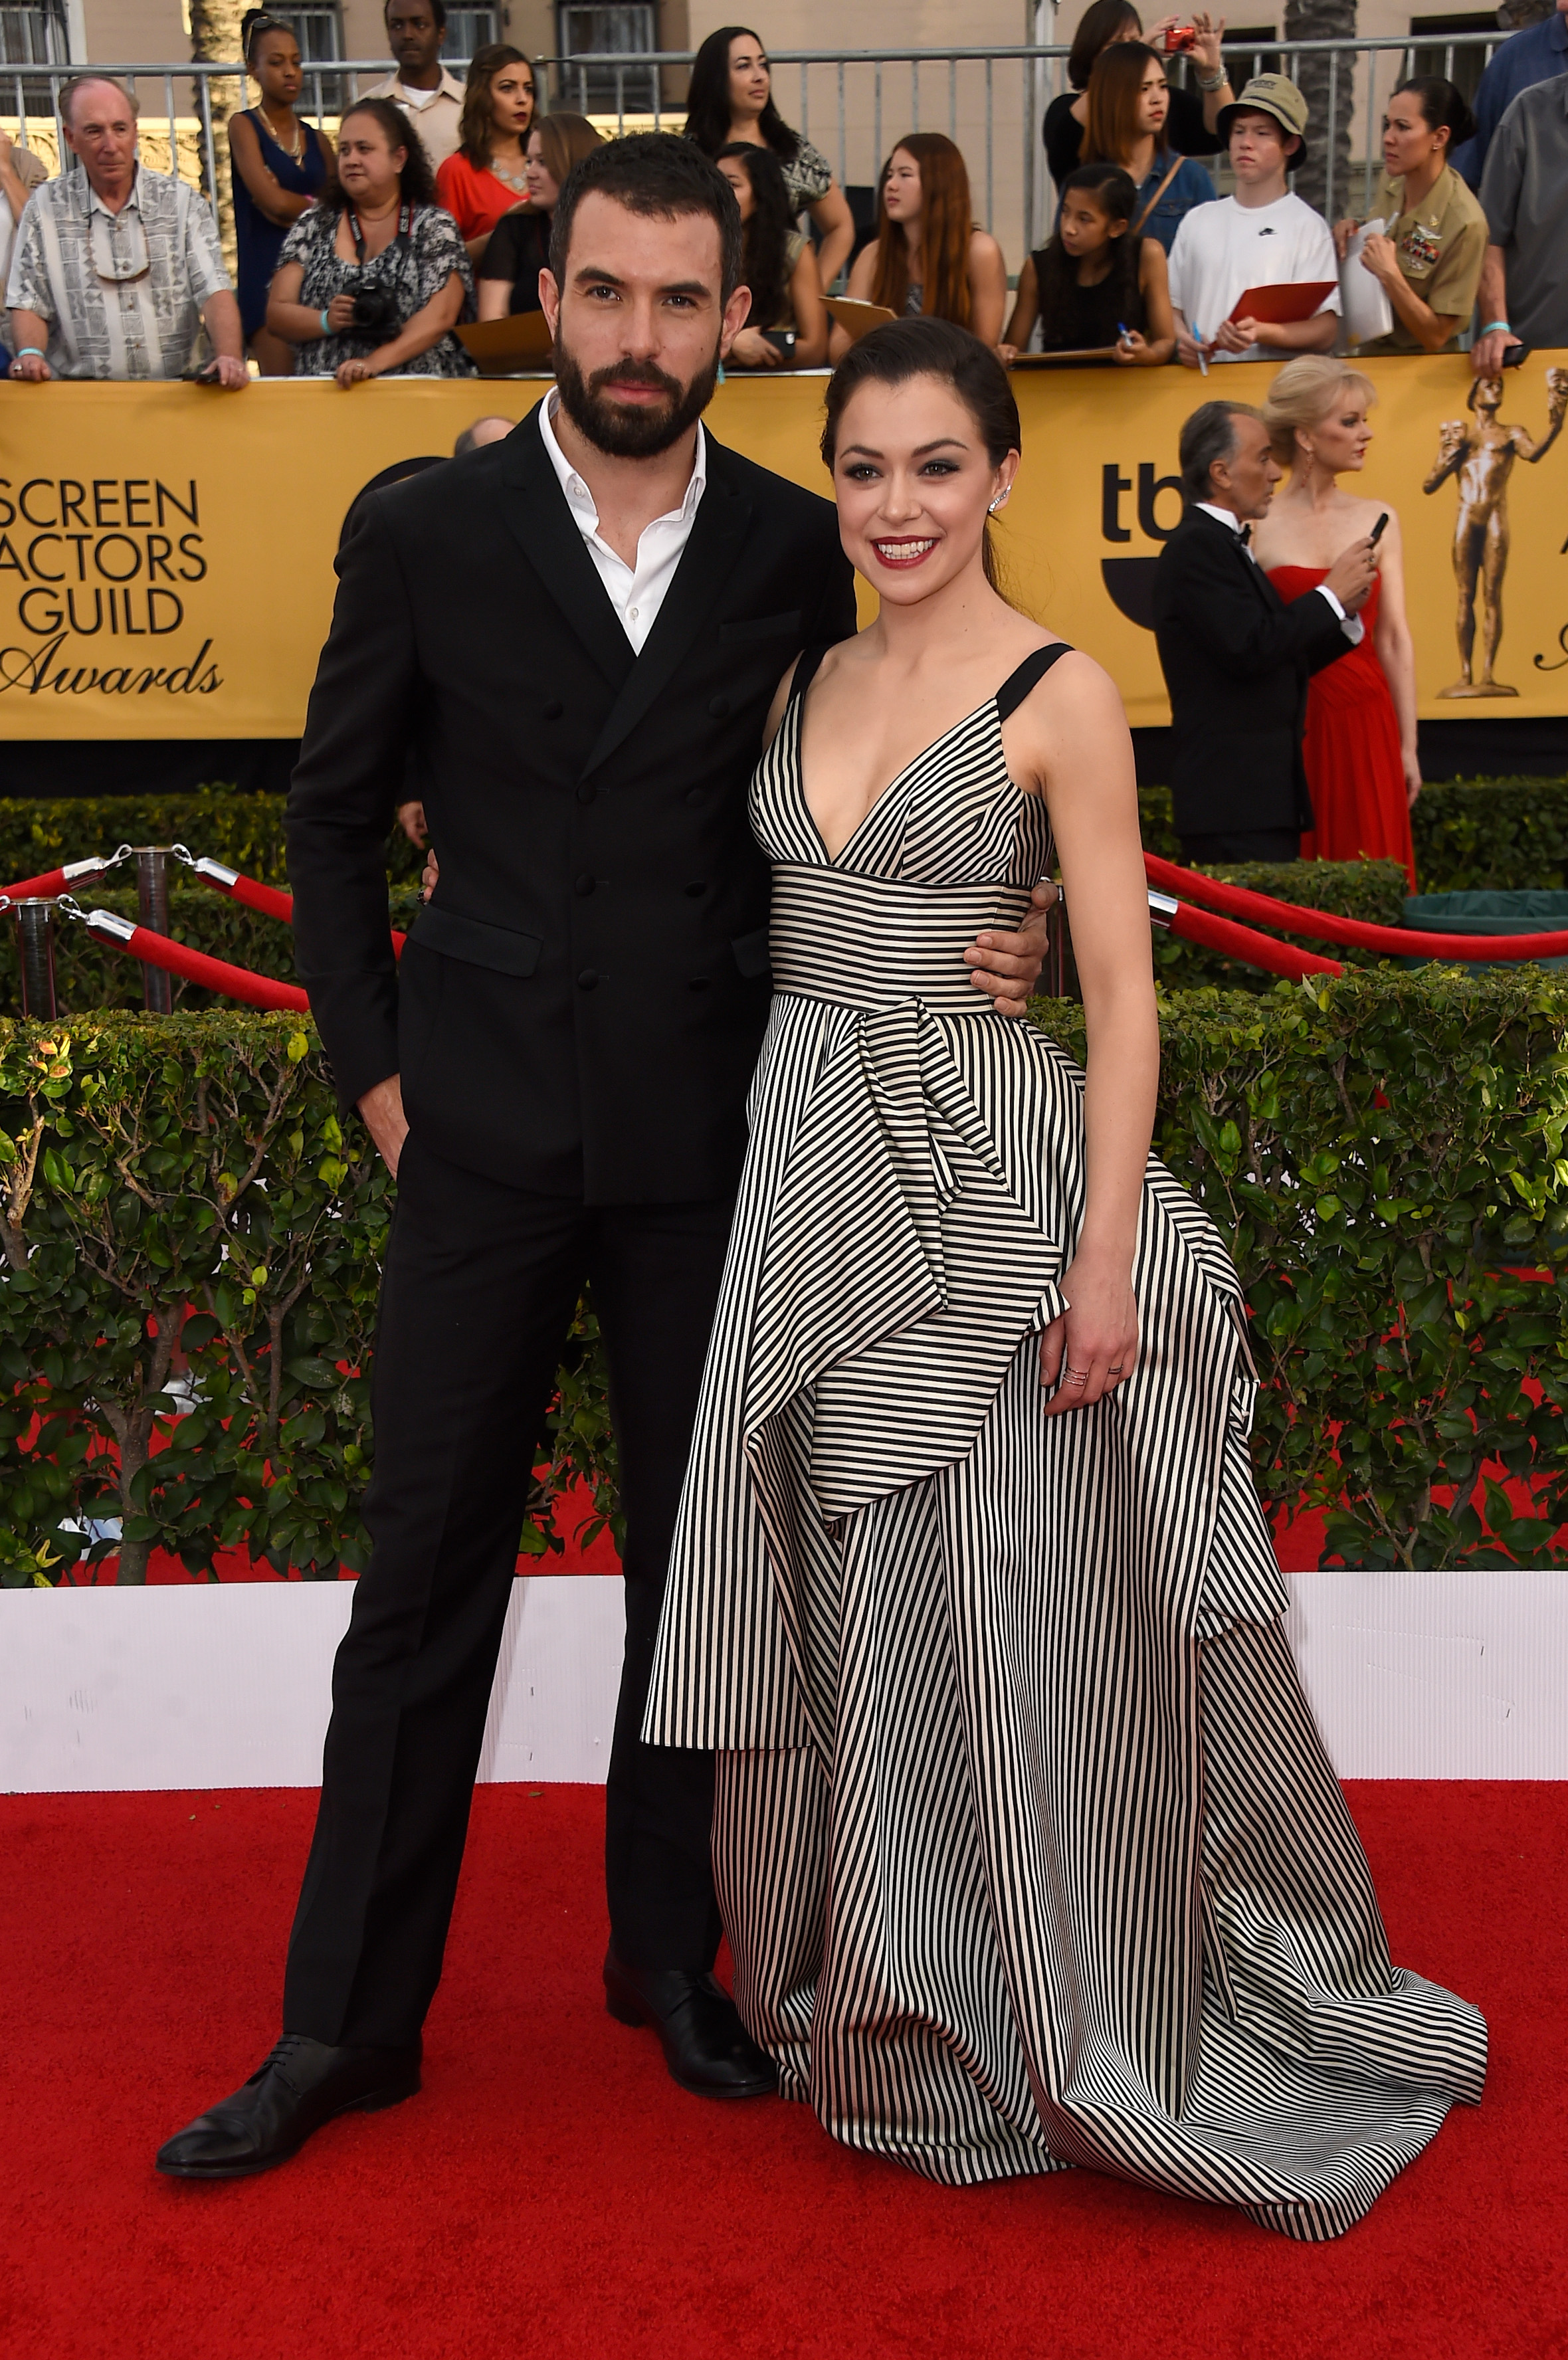 Tatiana Maslany & Tom Cullen Slay The Competition When It Comes To Adorable  Instagram Pics — PHOTOS